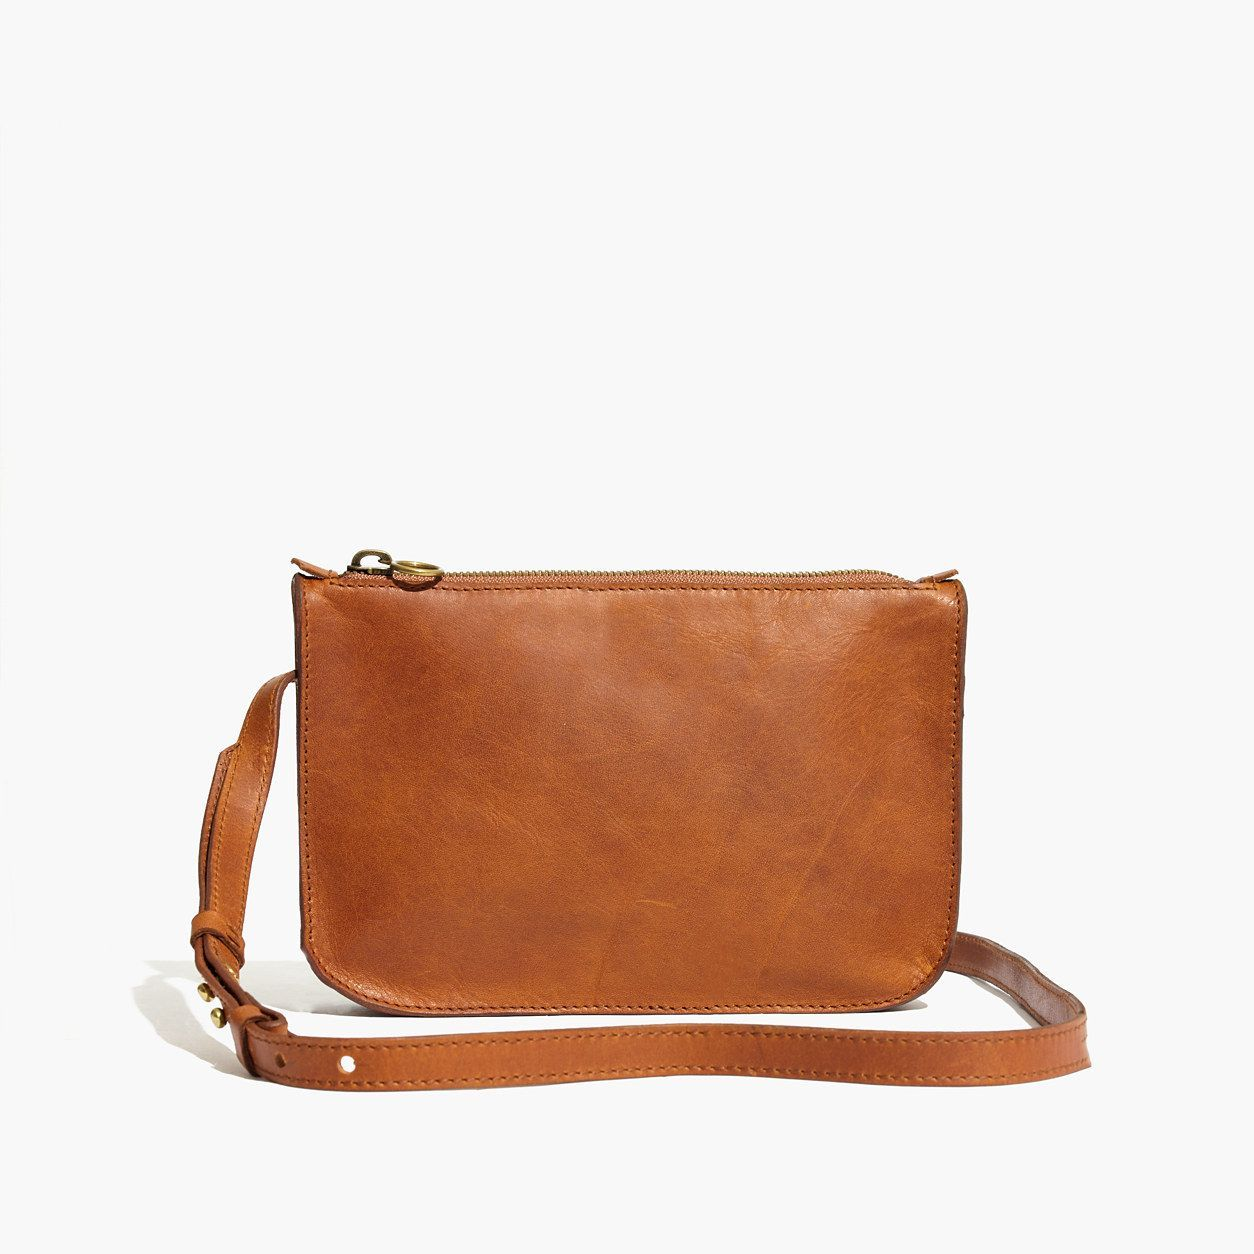 15cbbdcc33b4 The Simple Crossbody Bag   our current favorites   Madewell